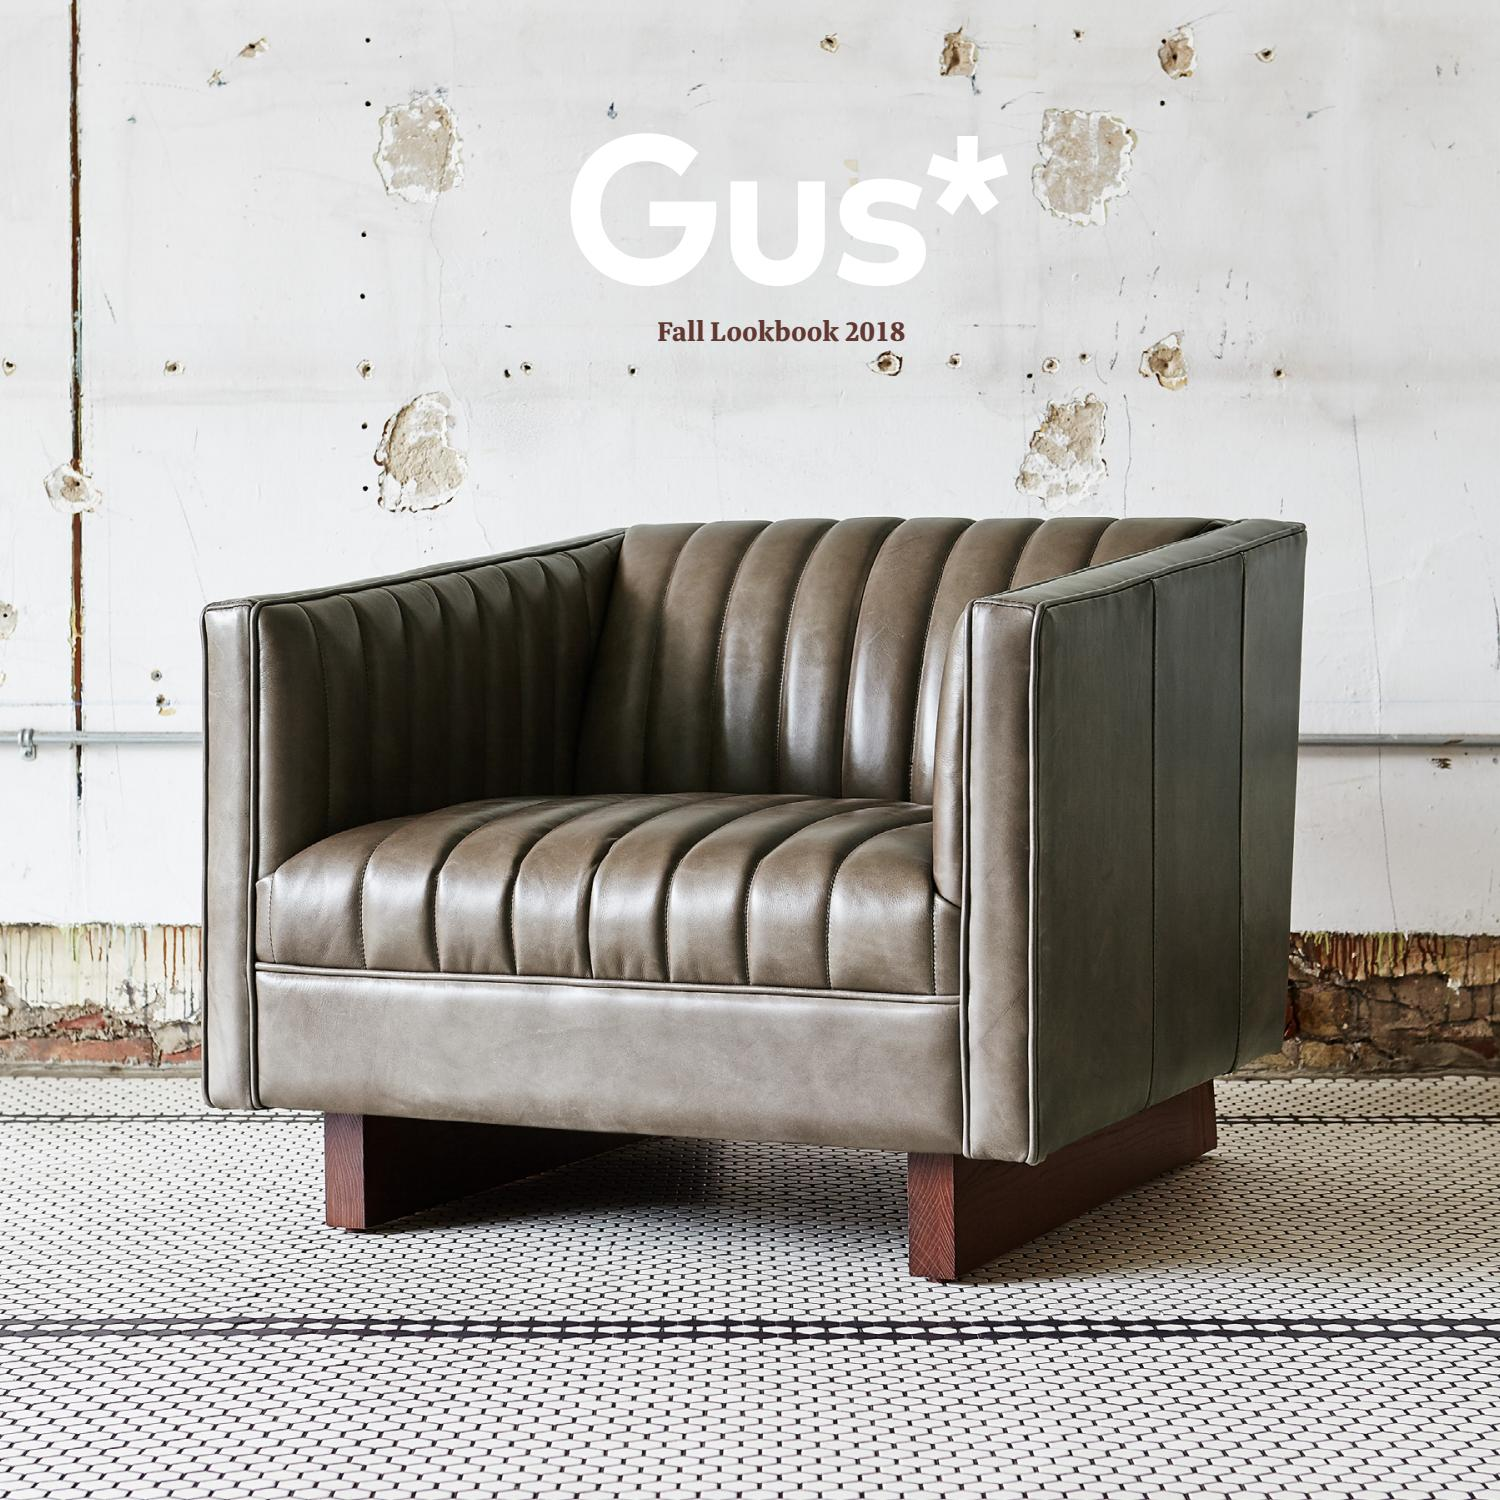 Prime Gus Modern Fall 2018 Lookbook By Gus Modern Issuu Pabps2019 Chair Design Images Pabps2019Com